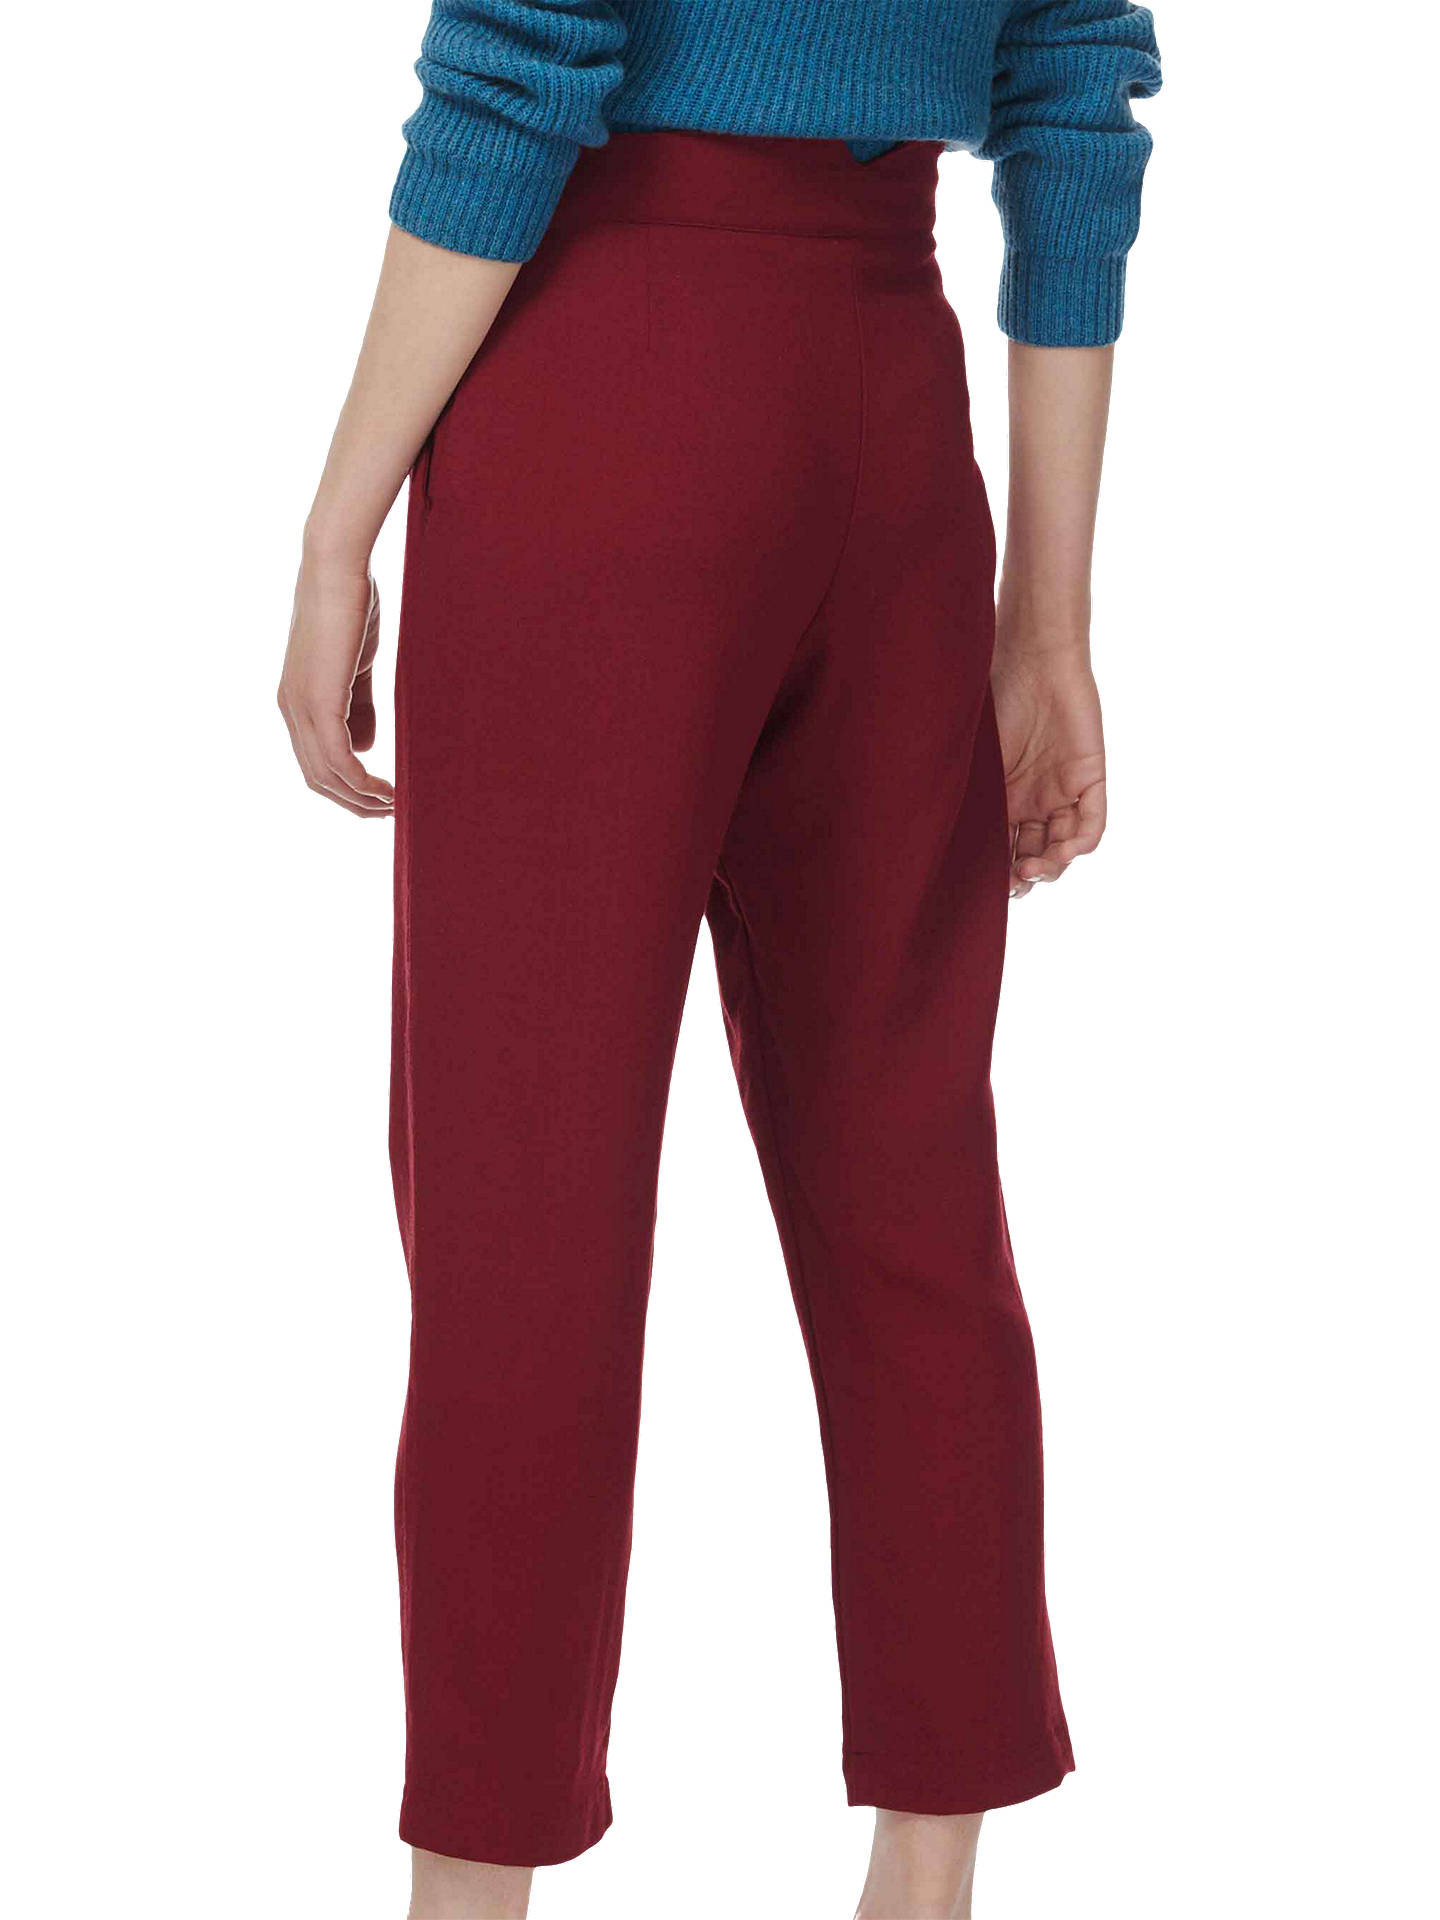 BuyBrora Wool Crepe Trousers, Auburn, 6 Online at johnlewis.com